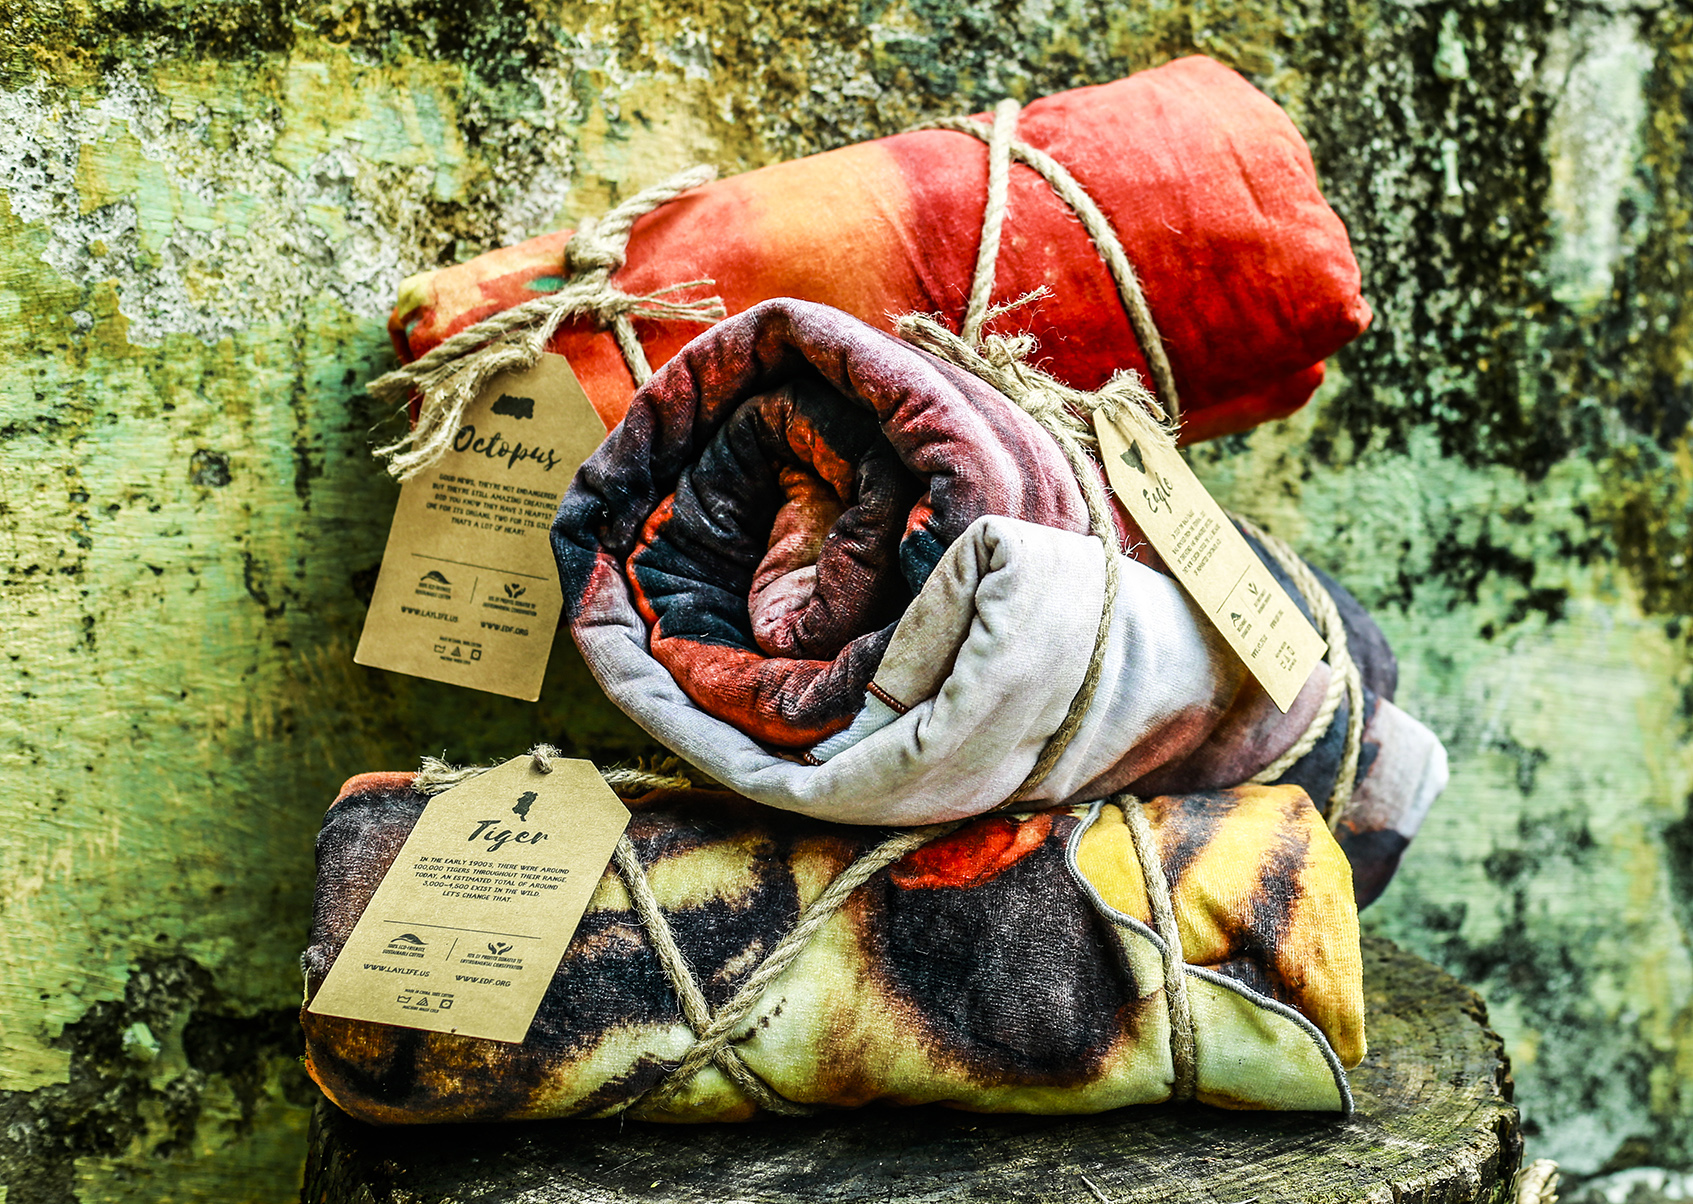 Laylife, towel, octopus, tiger, eagle, spread, blanket, sheet, throw, cotton, environment, dry, thick, watercolor, art.jpg